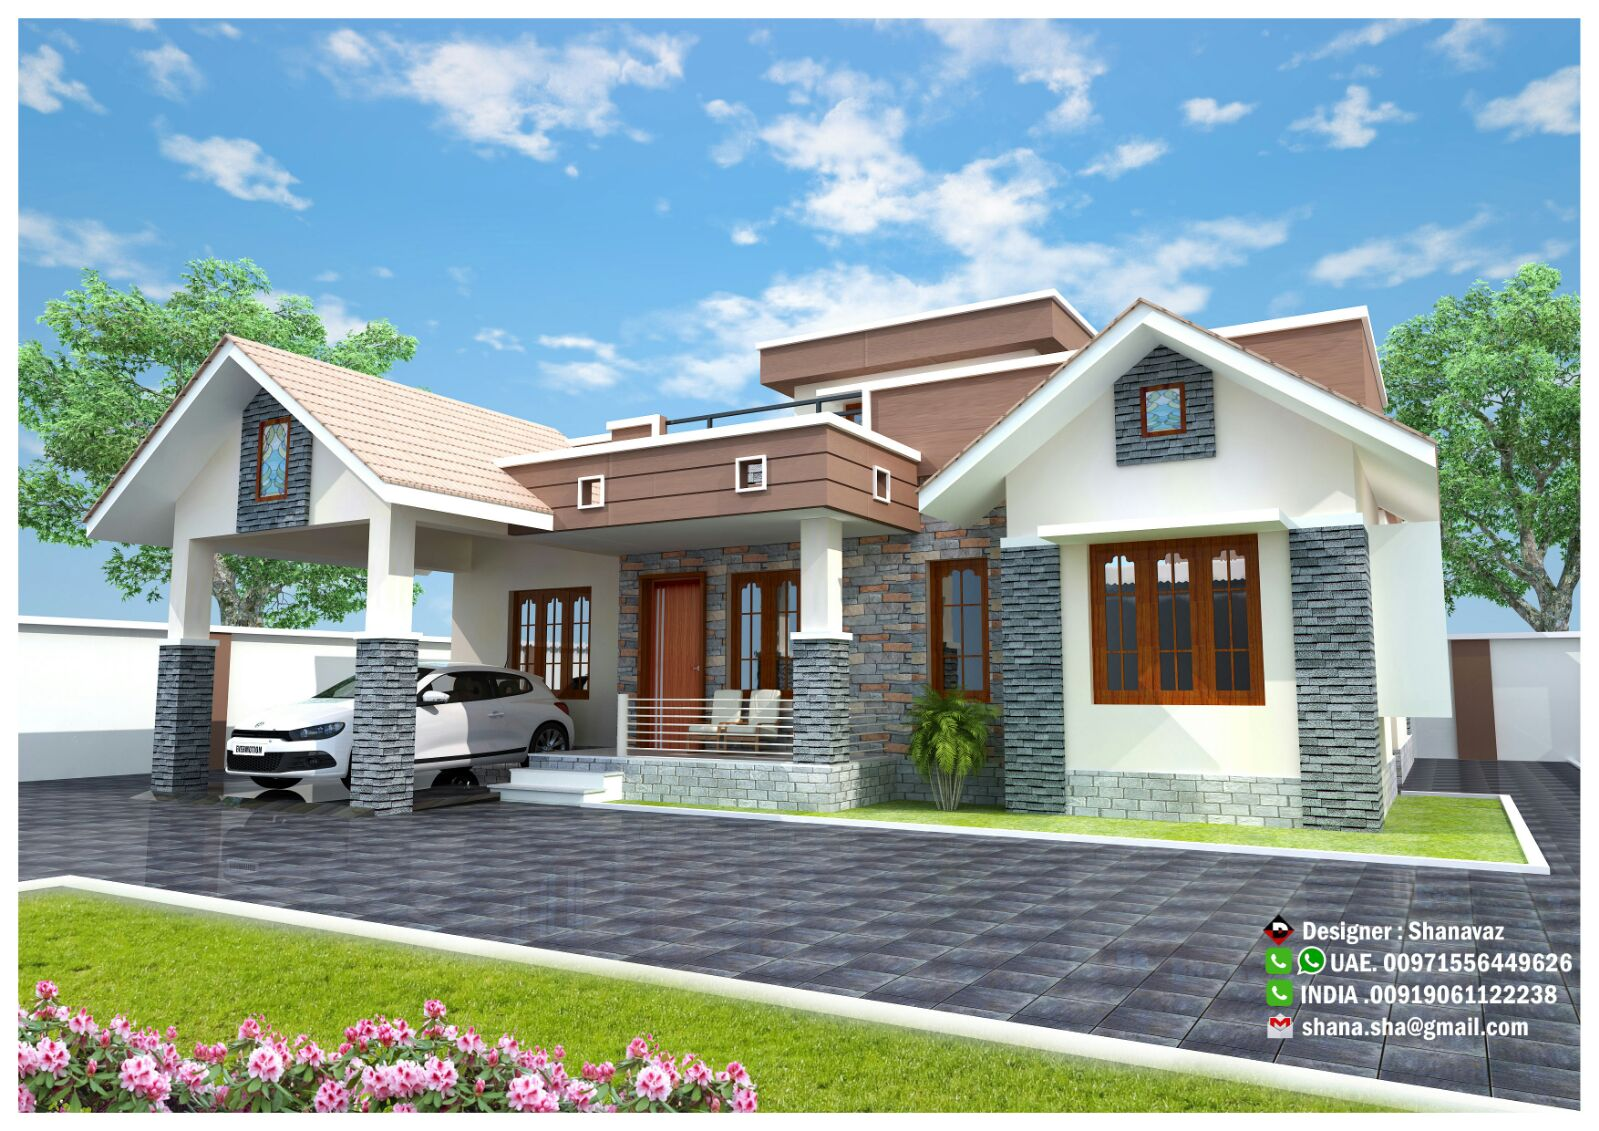 Contemporary Single Floor Home In 1350 Sq Ft: 1300 Sq Ft Modern Single Floor Home Design